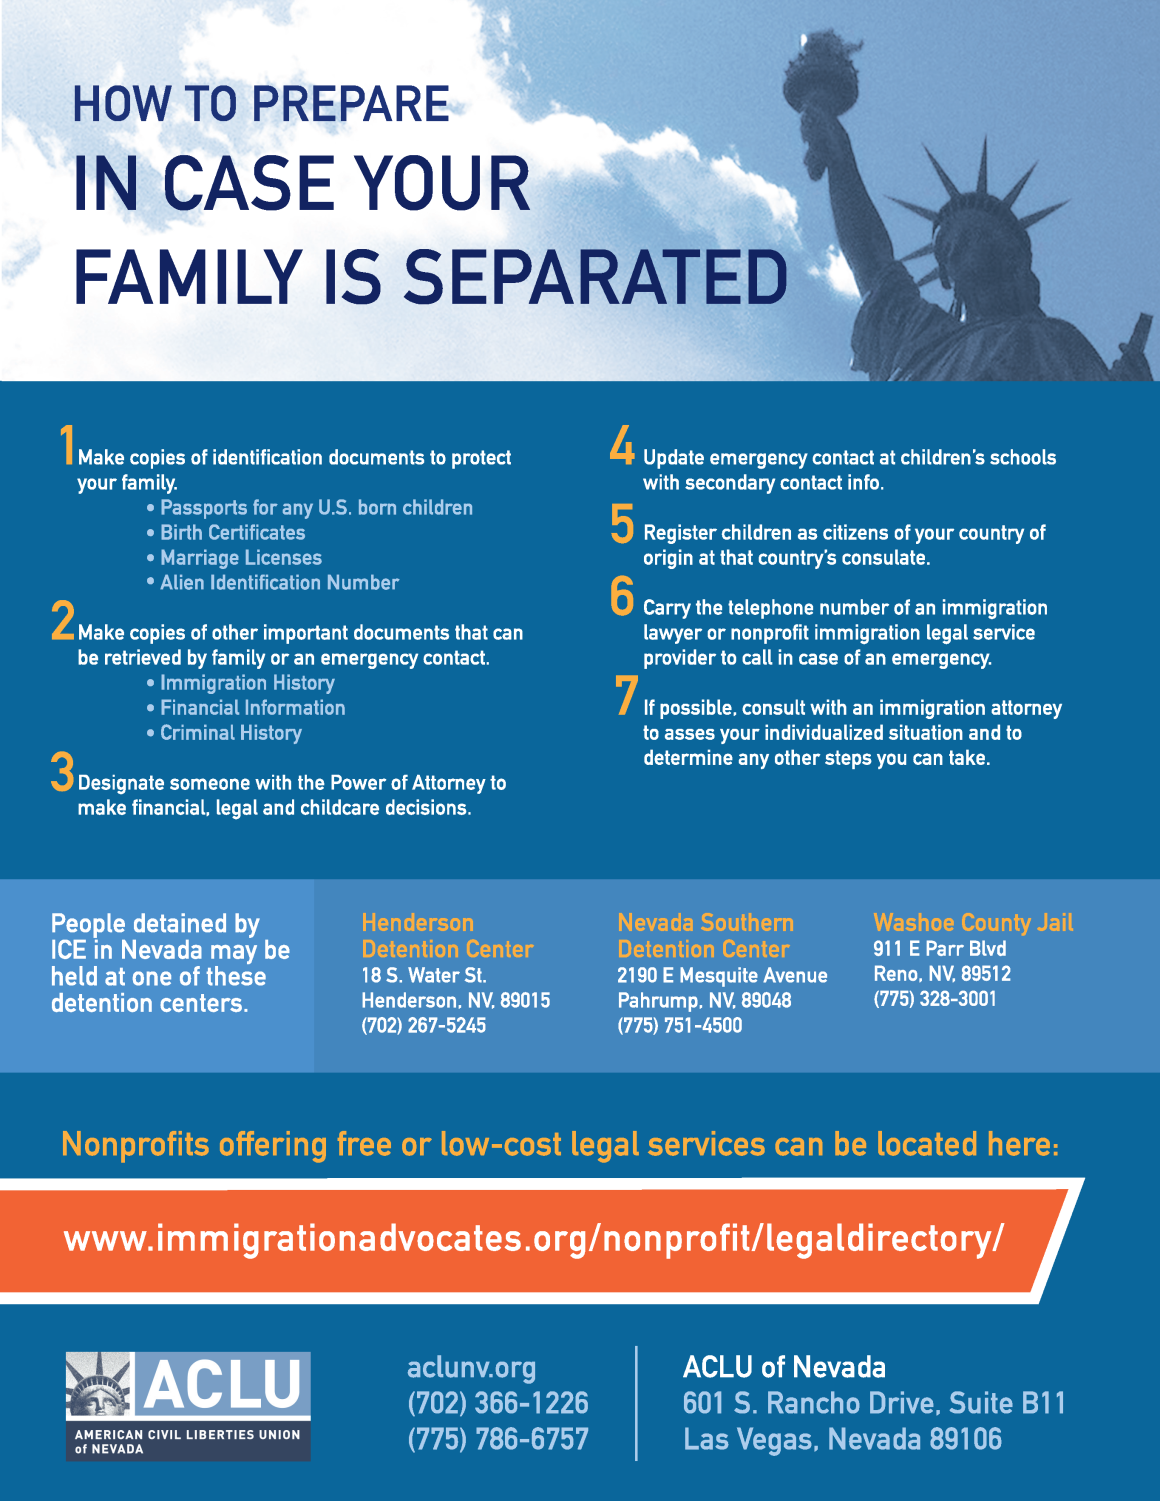 Immigration and DACA Resources | ACLU of Nevada